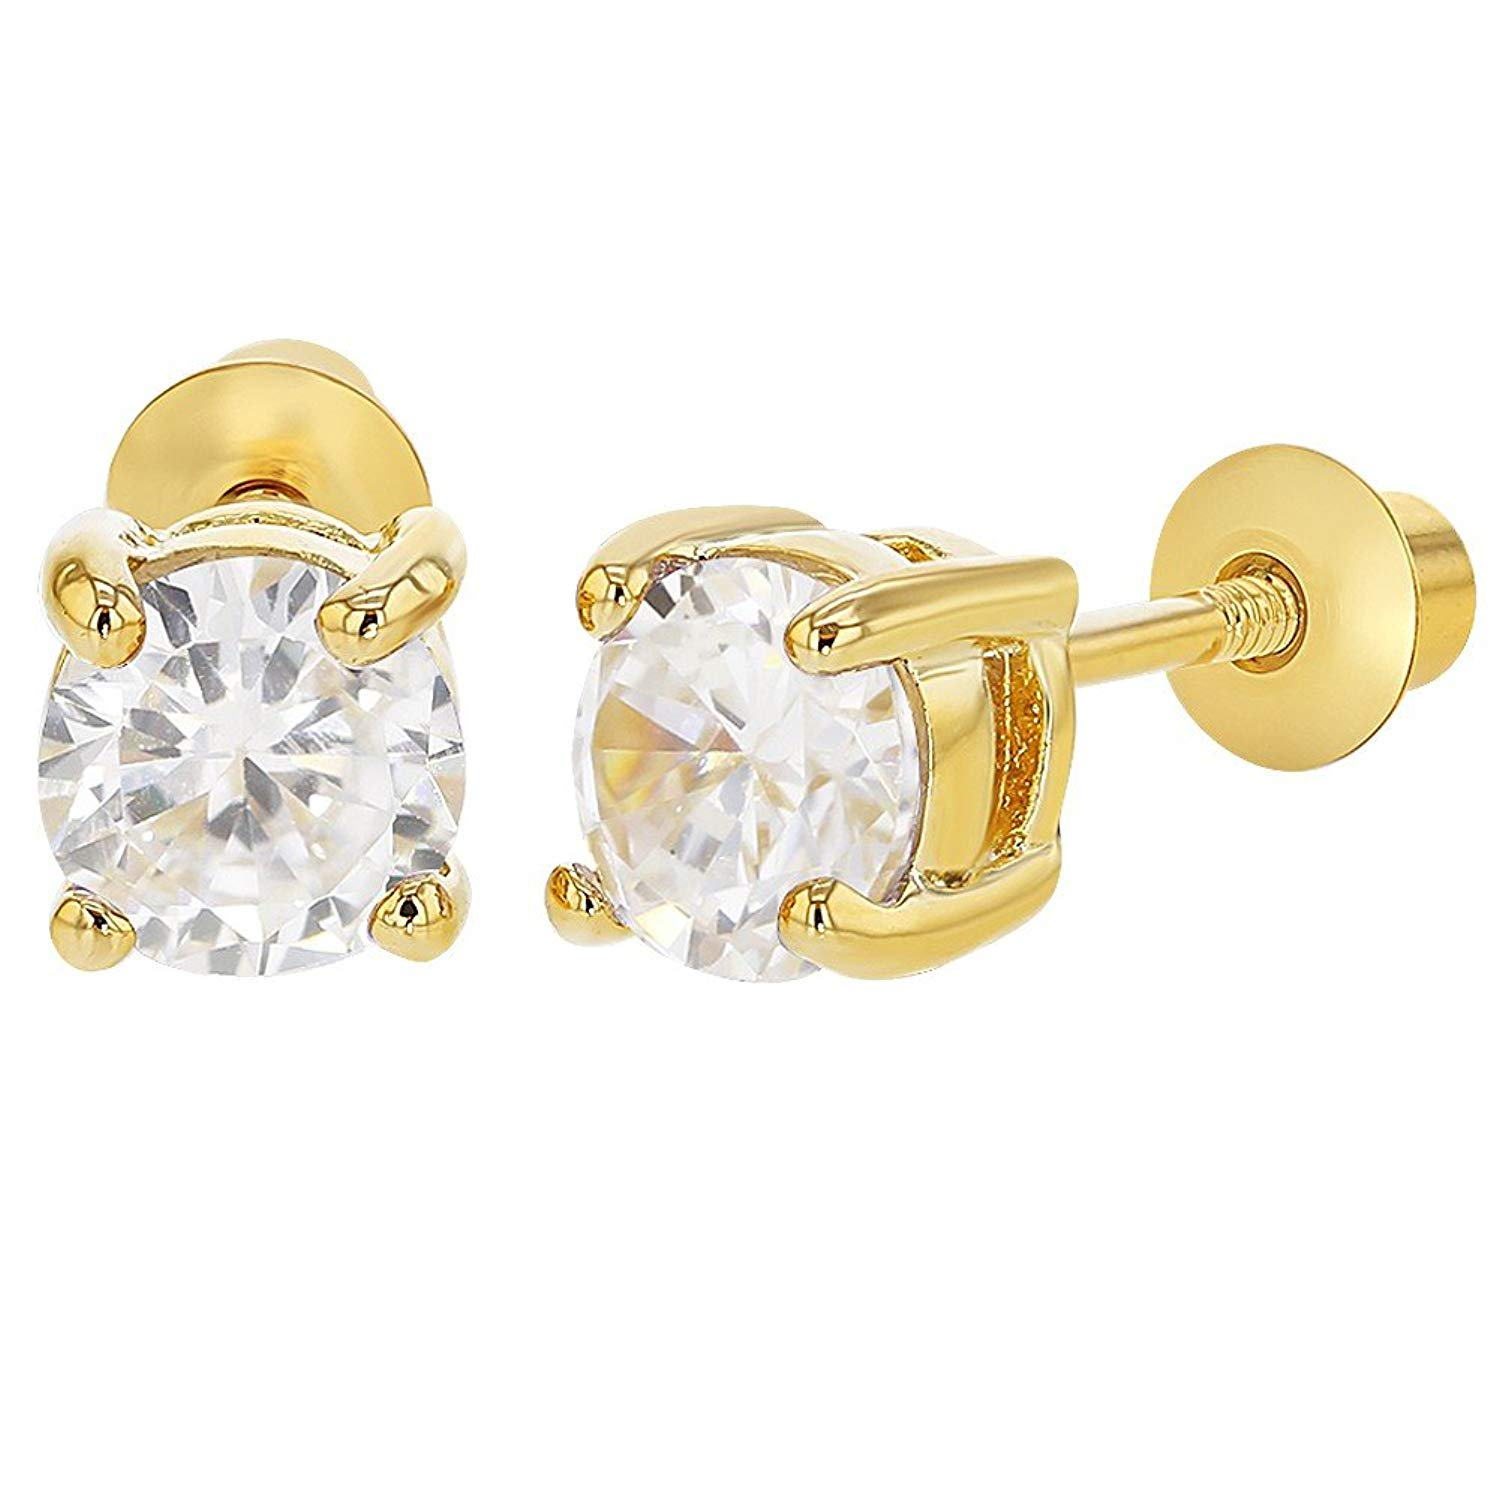 3d9bb8491 Get Quotations · 18k Gold Plated Screw Back Earrings for Girls and Kids  Round Clear CZ 5mm